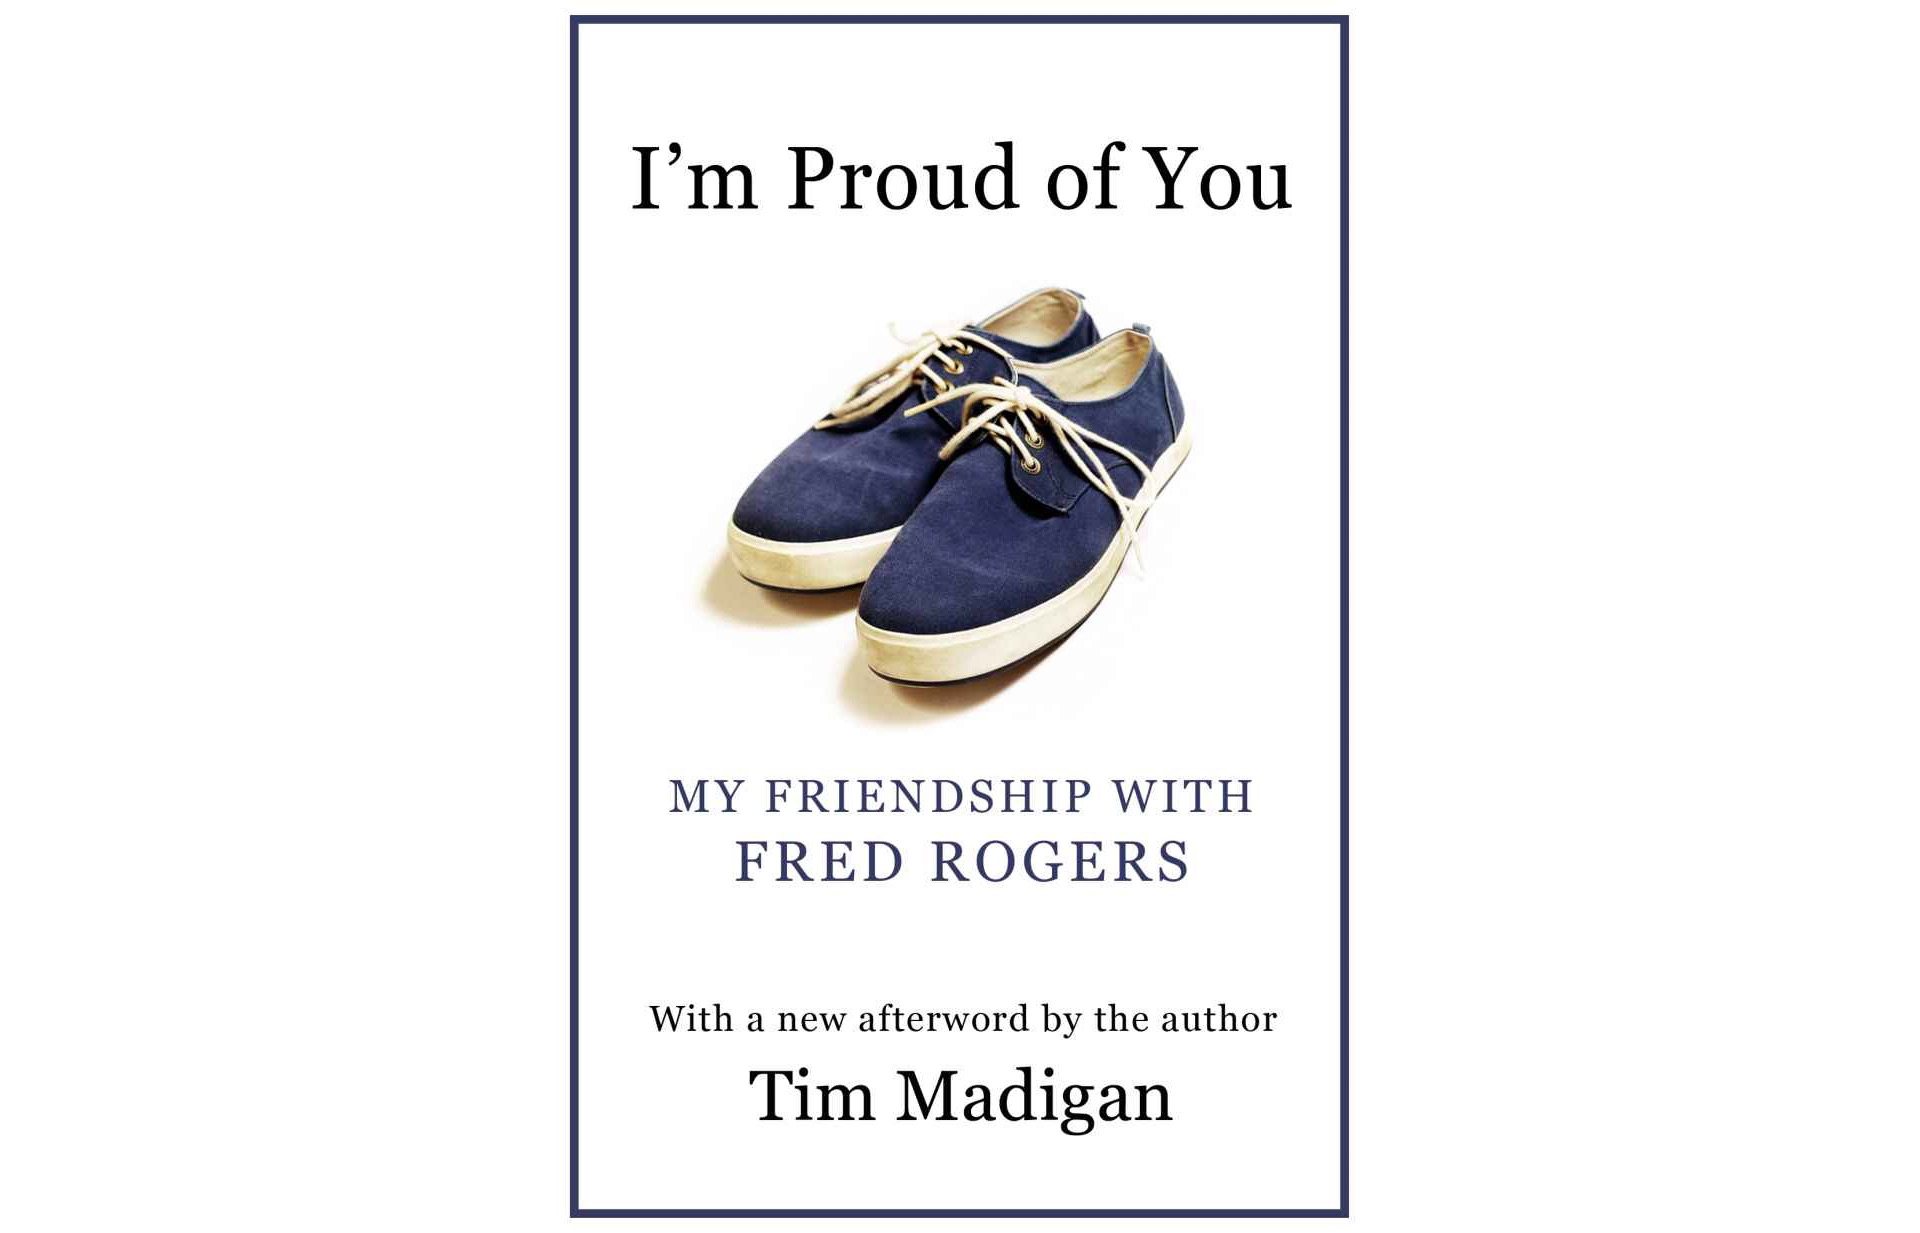 im-proud-of-you-my-friendship-with-fred-rogers-by-tim-madigan